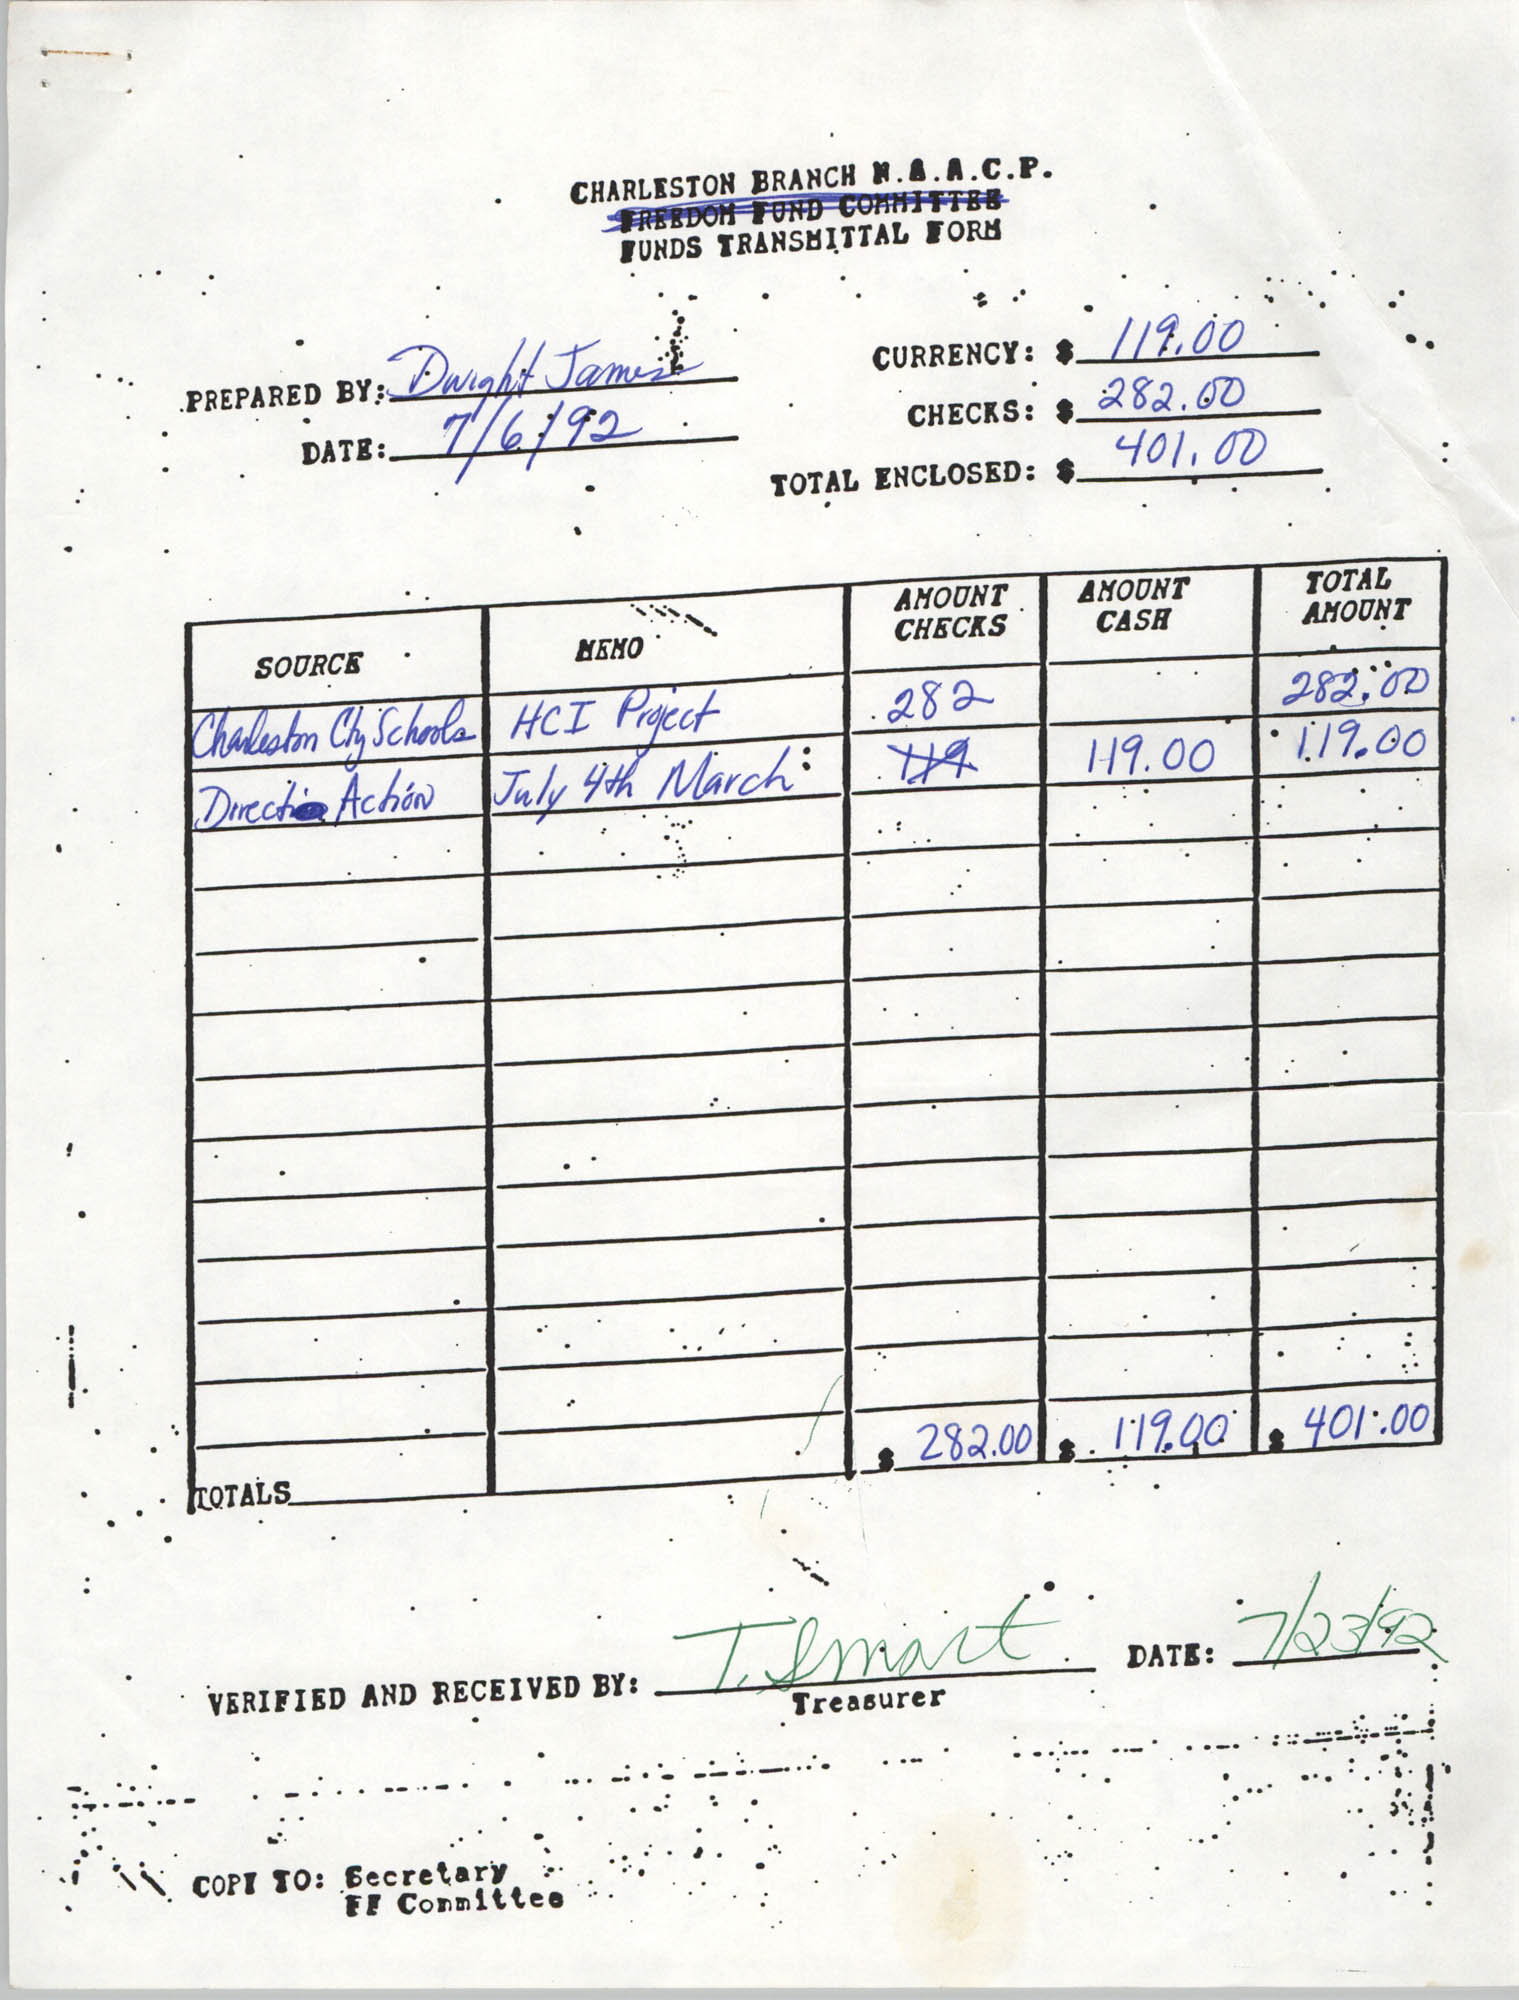 Charleston Branch of the NAACP Funds Transmittal Forms, July 1992, Page 1